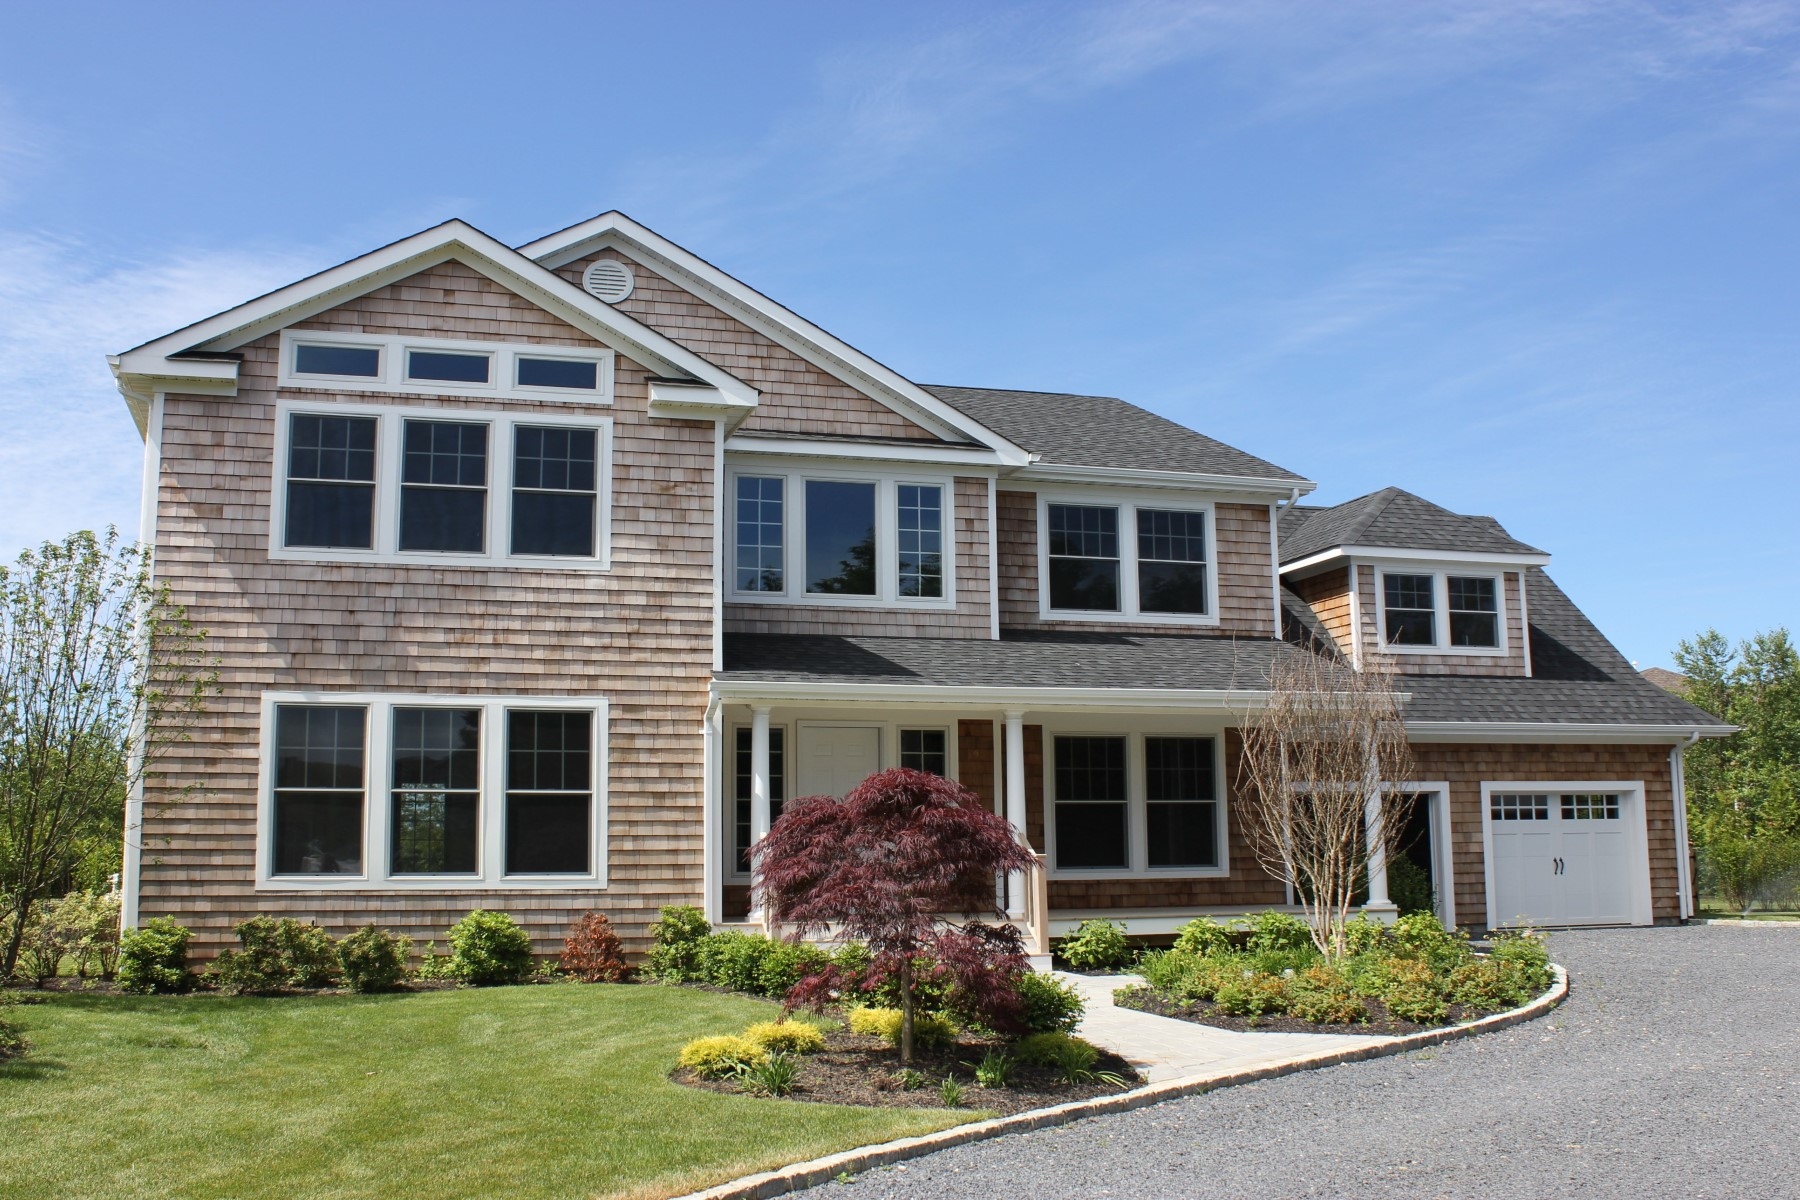 Single Family Home for Sale at Custom Design this Fabulous Home D-Model 26 Summer Drive, Lot #14 Southampton, New York 11968 United States